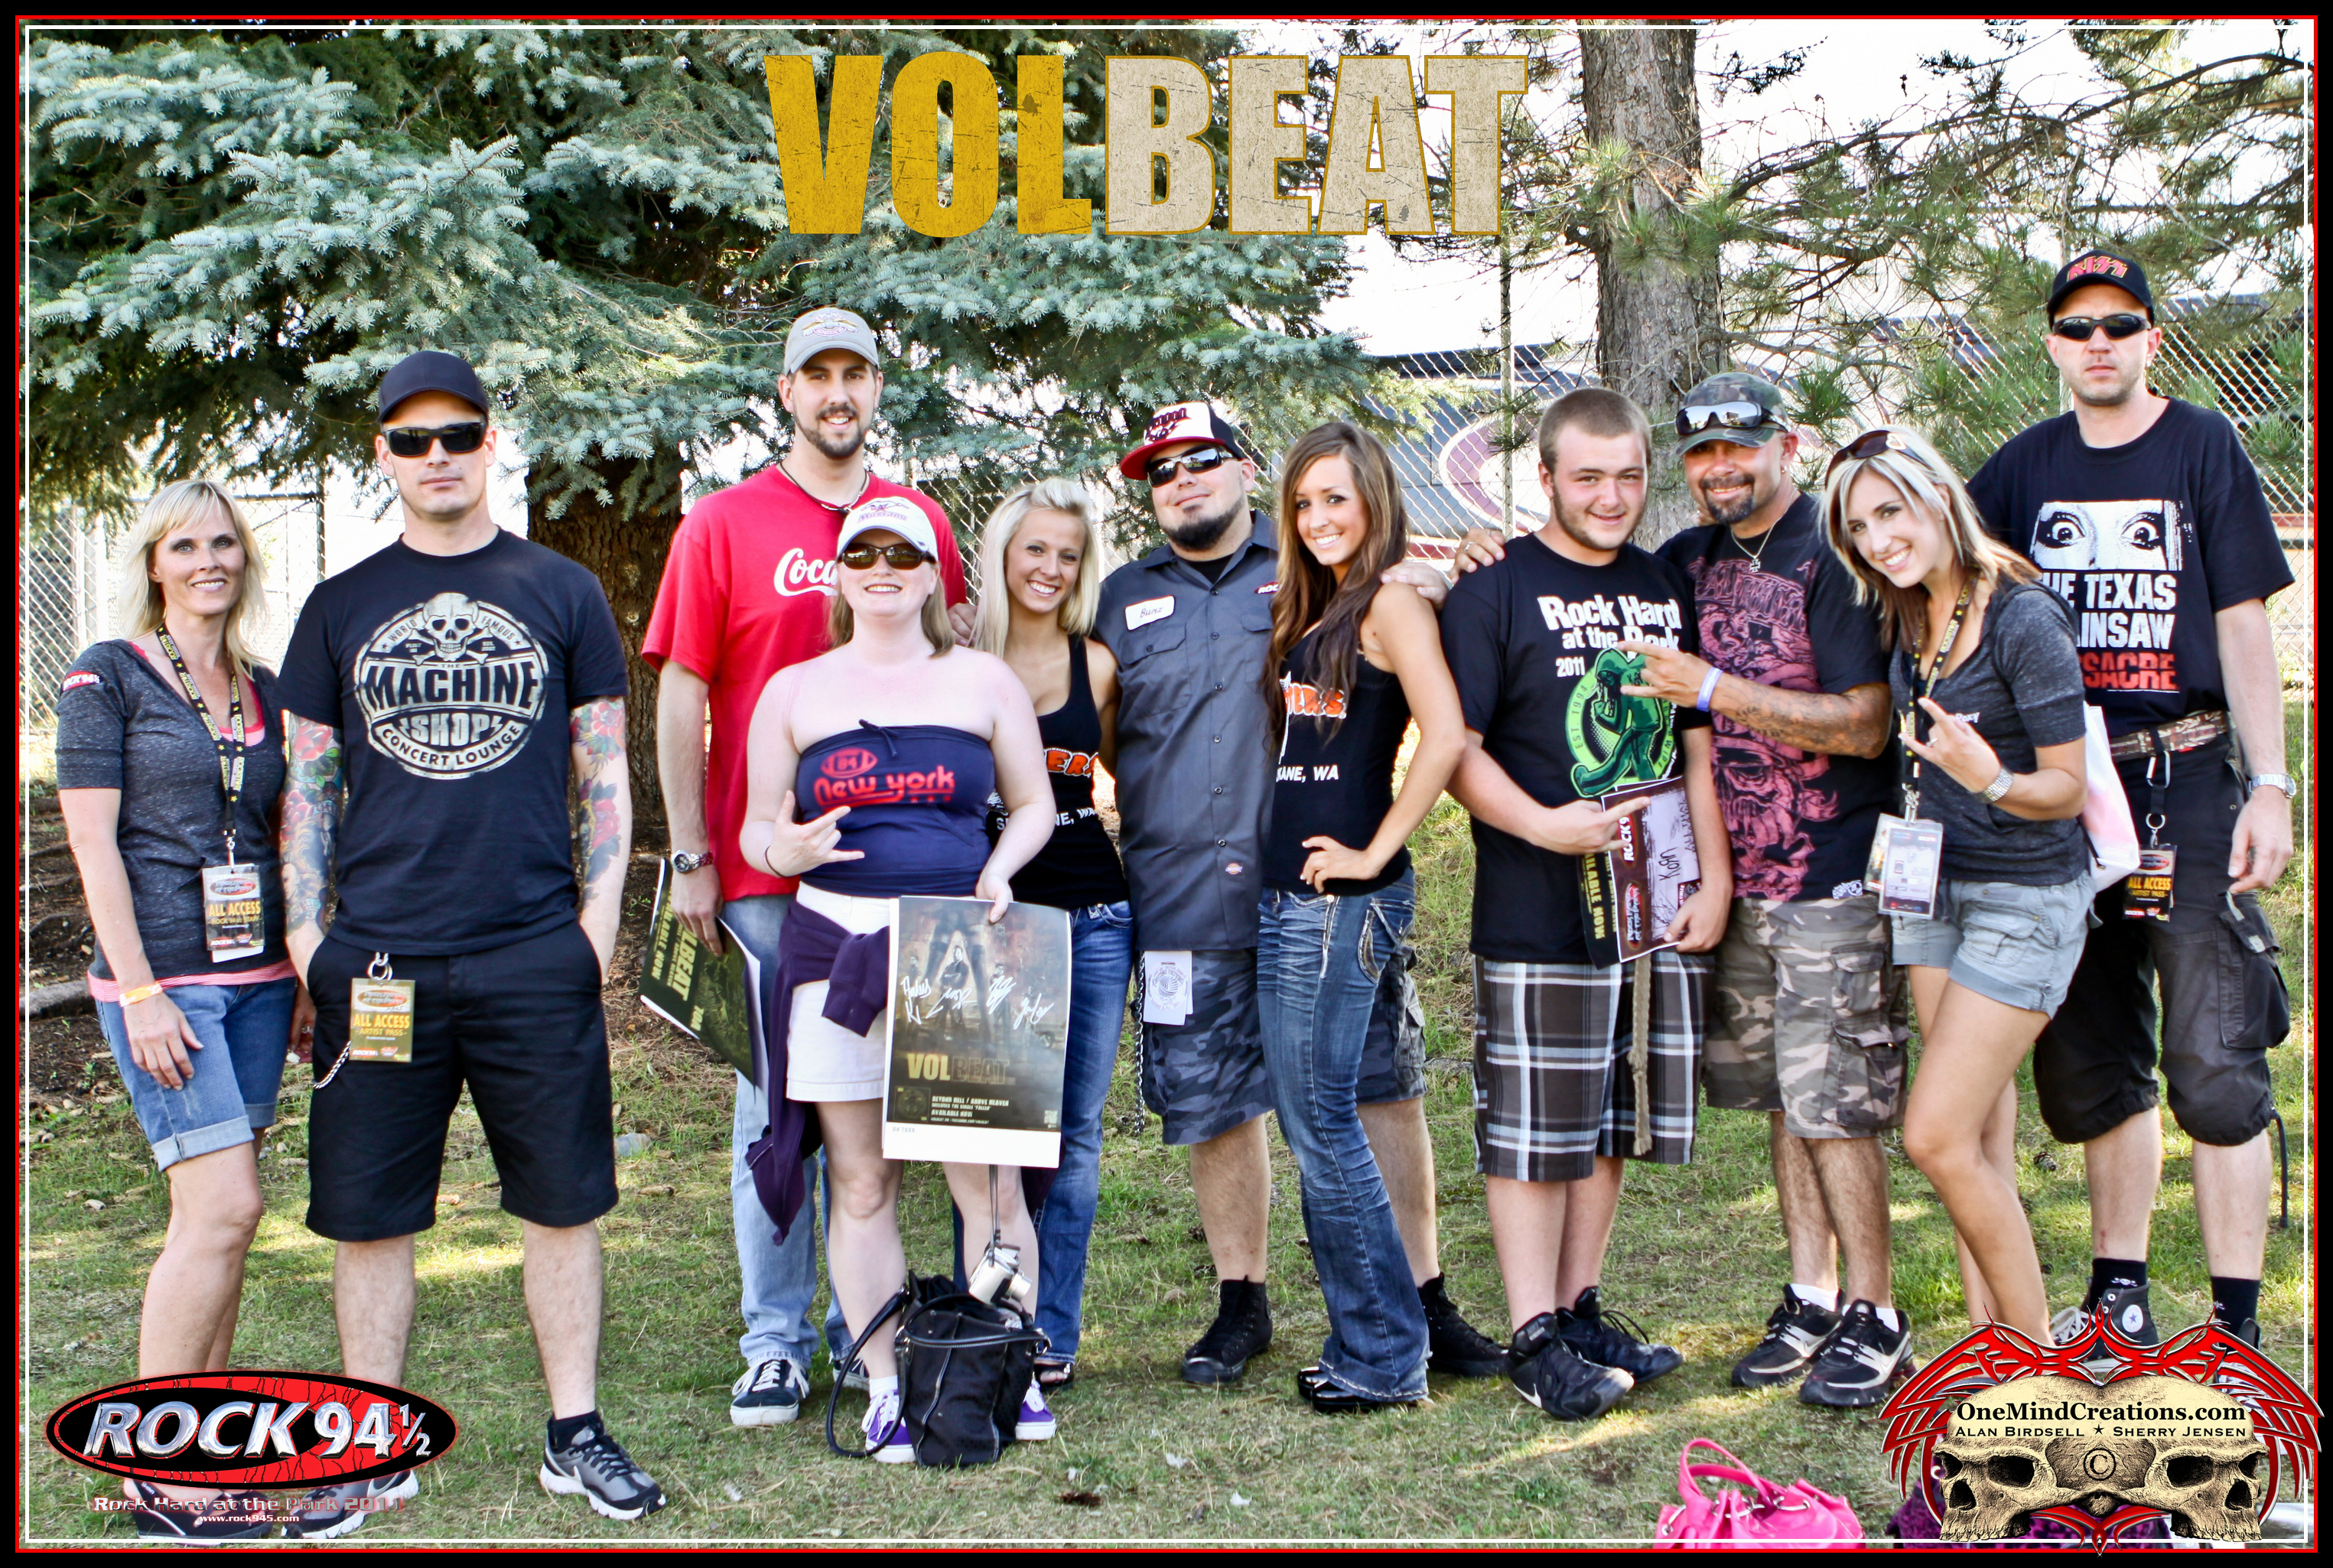 Meet and greet 11 volbeat meet and greet 11 kristyandbryce Choice Image